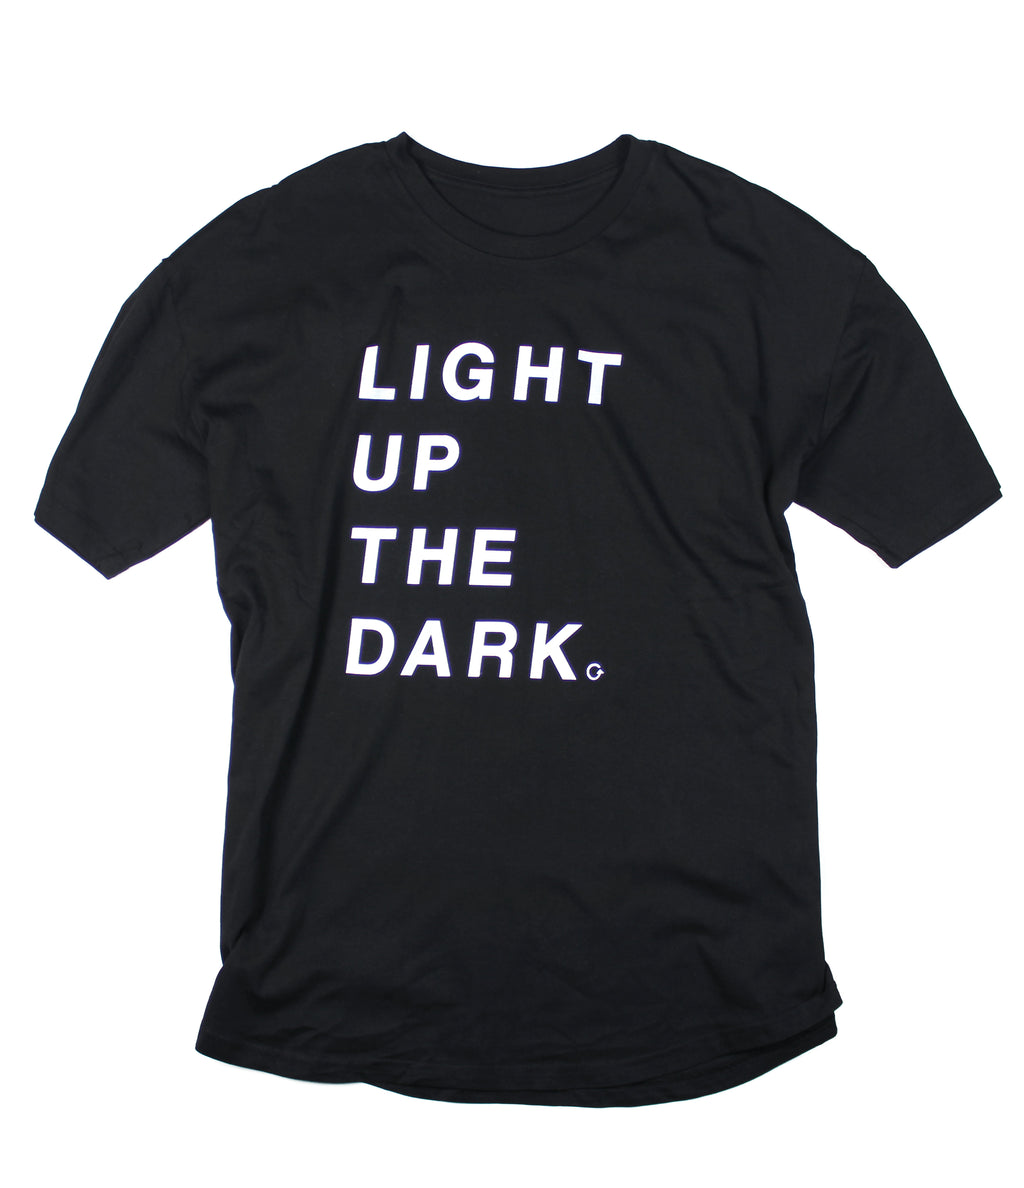 LIGHT UP THE DARK CURVED HEM T-SHIRT